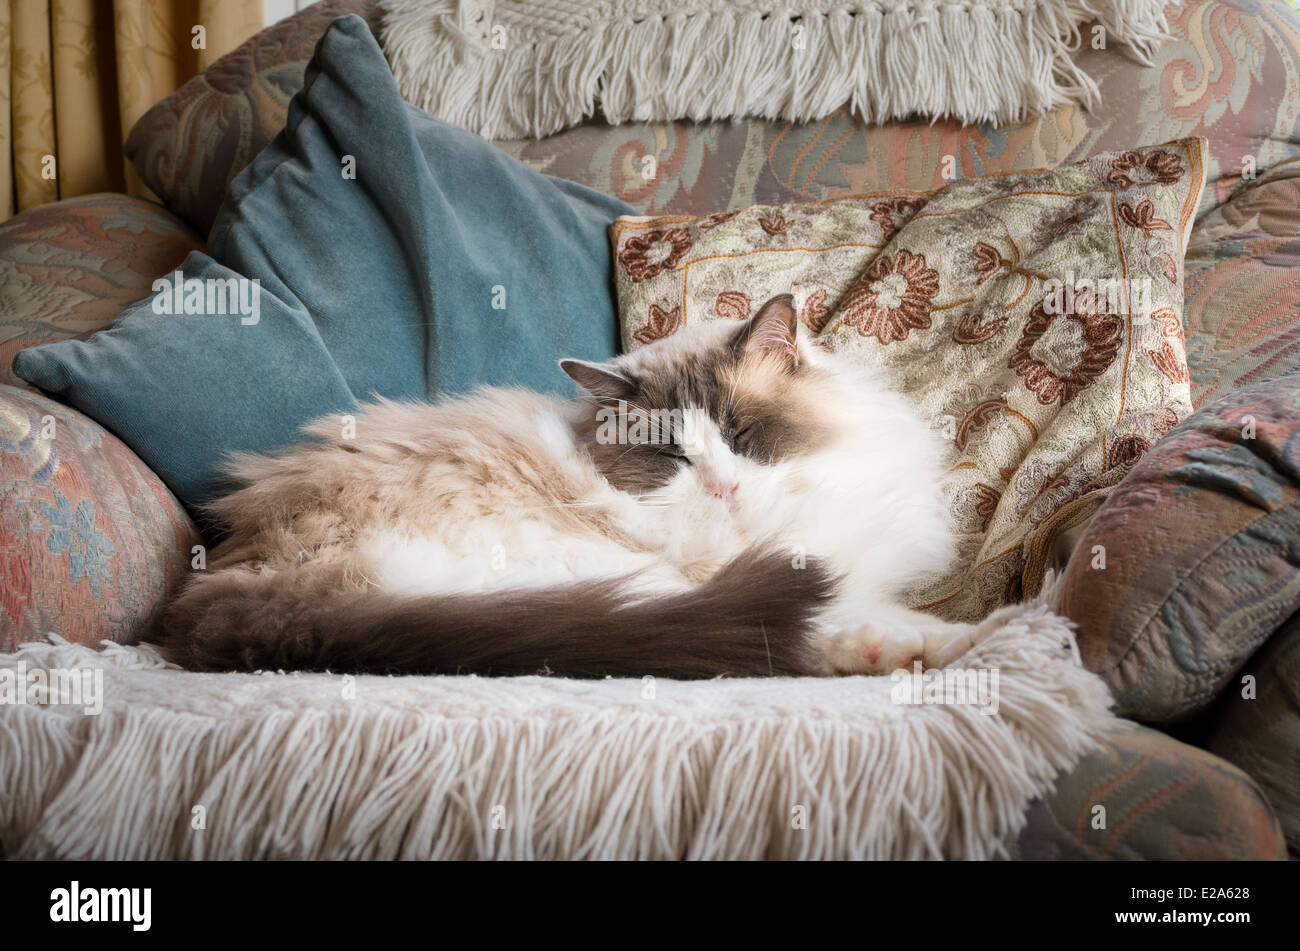 Ragdoll cat dozing in arm chair - Stock Image